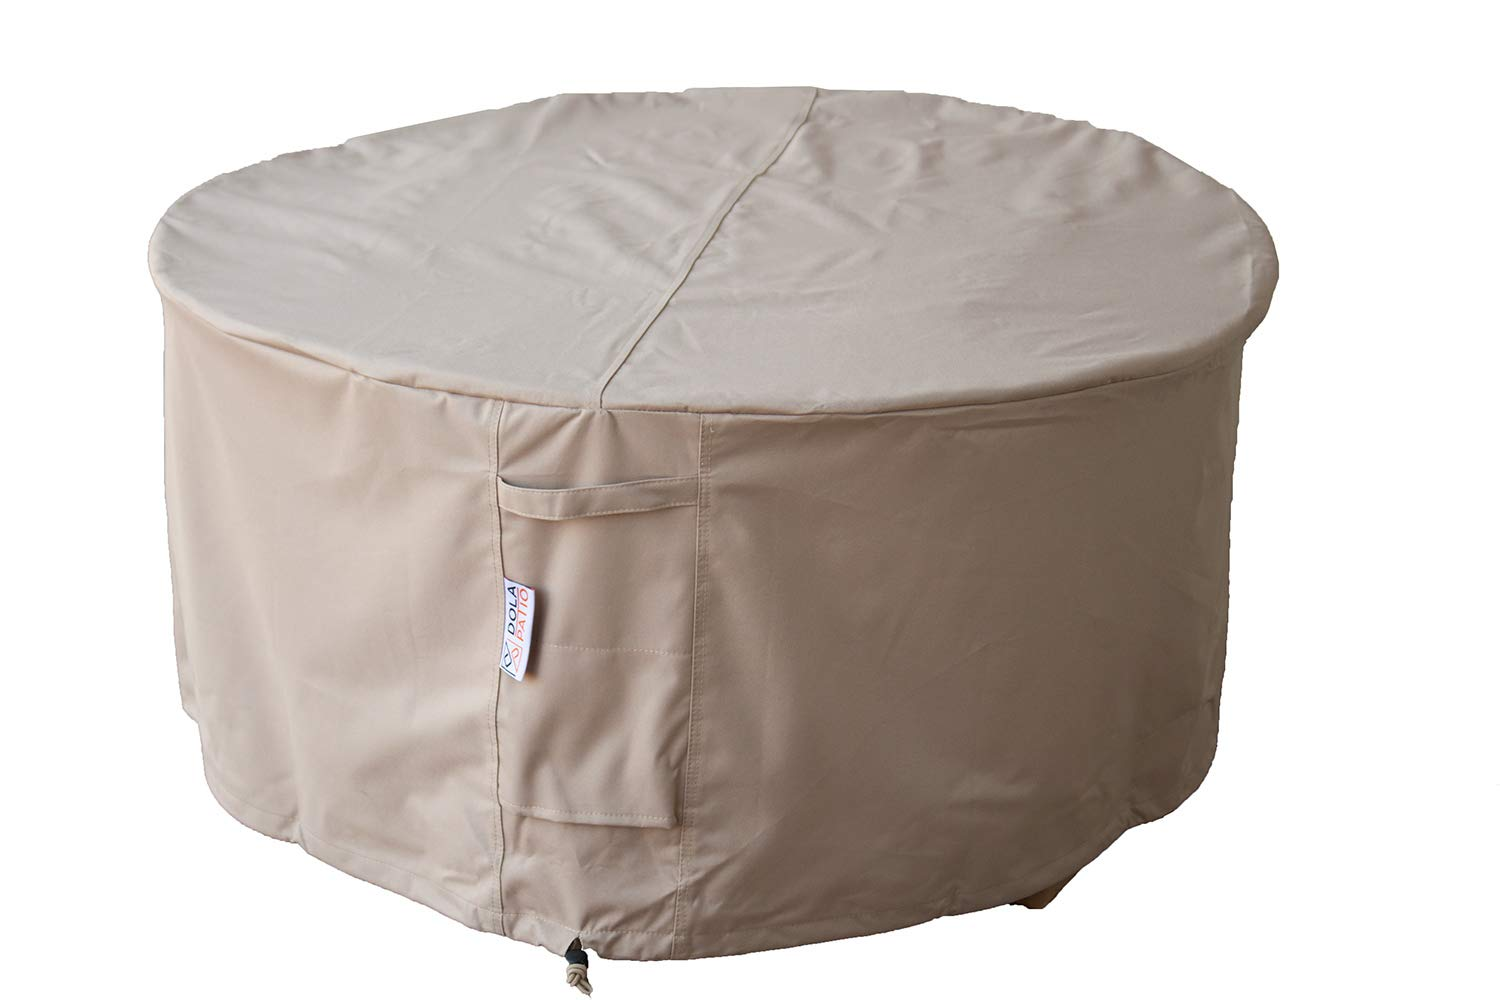 Dola Patio Fire Pit Cover Round All Weather Protection Durable & Water Resistant Made with Premium Quality 100% Polyester Beige Fabric from (44'' x 24''H) by Dola Patio